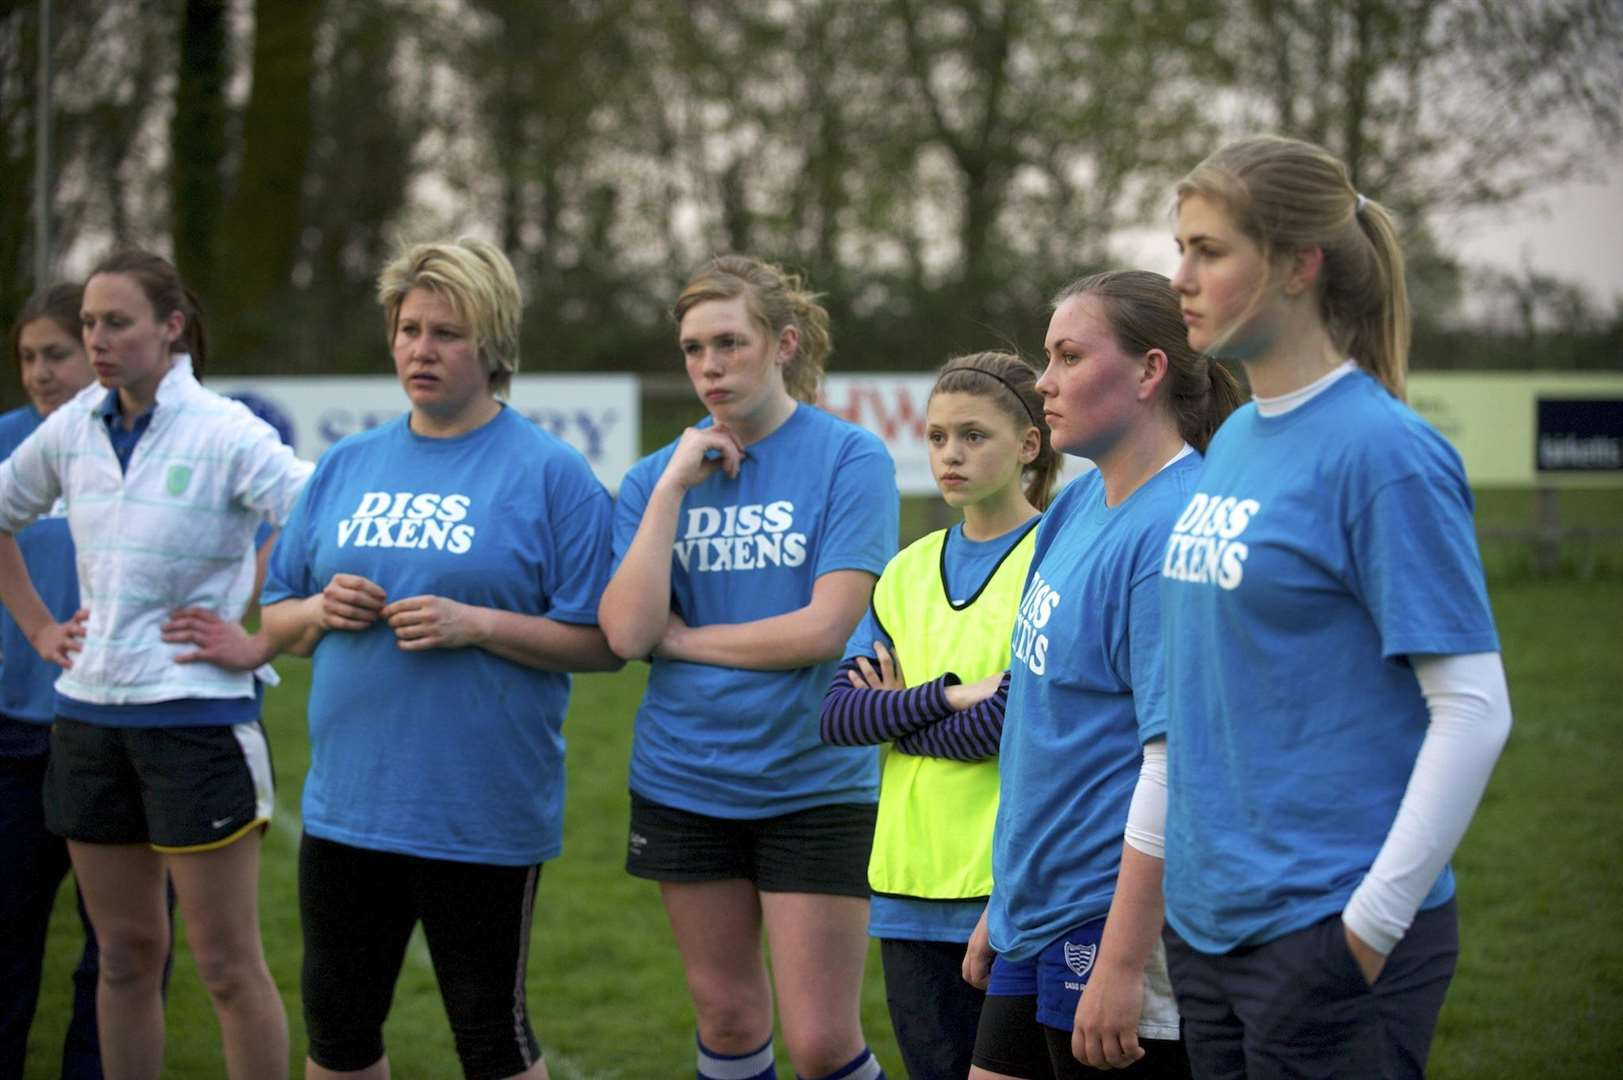 FORMER TEAM: The former Diss Vixens team pictured training in 2011